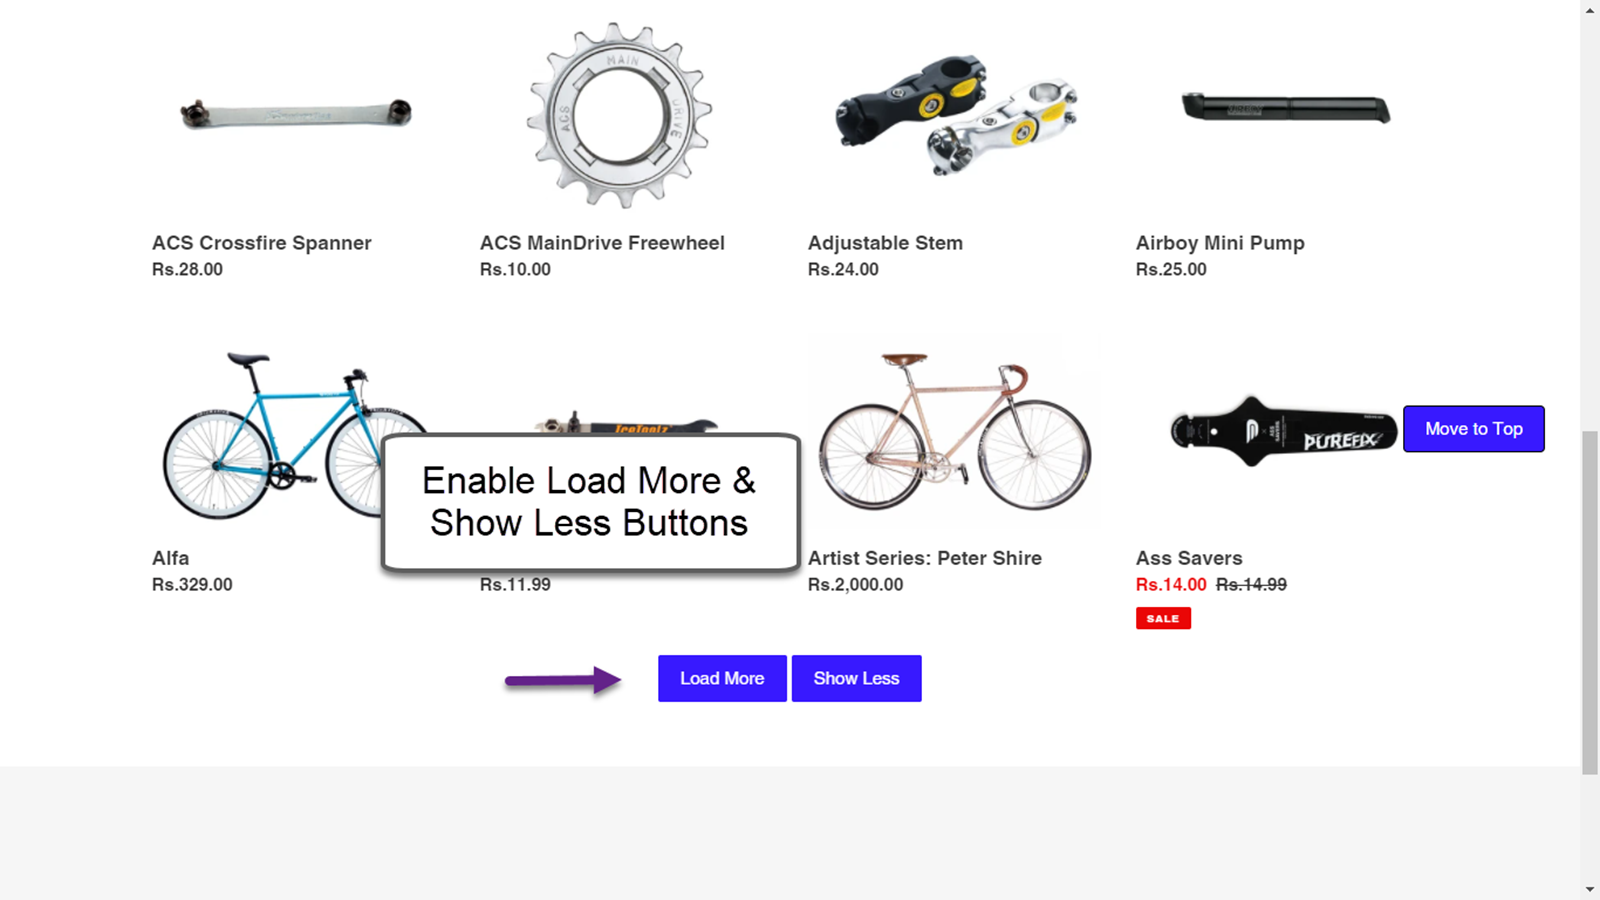 Enable Load More & Show Less Buttons